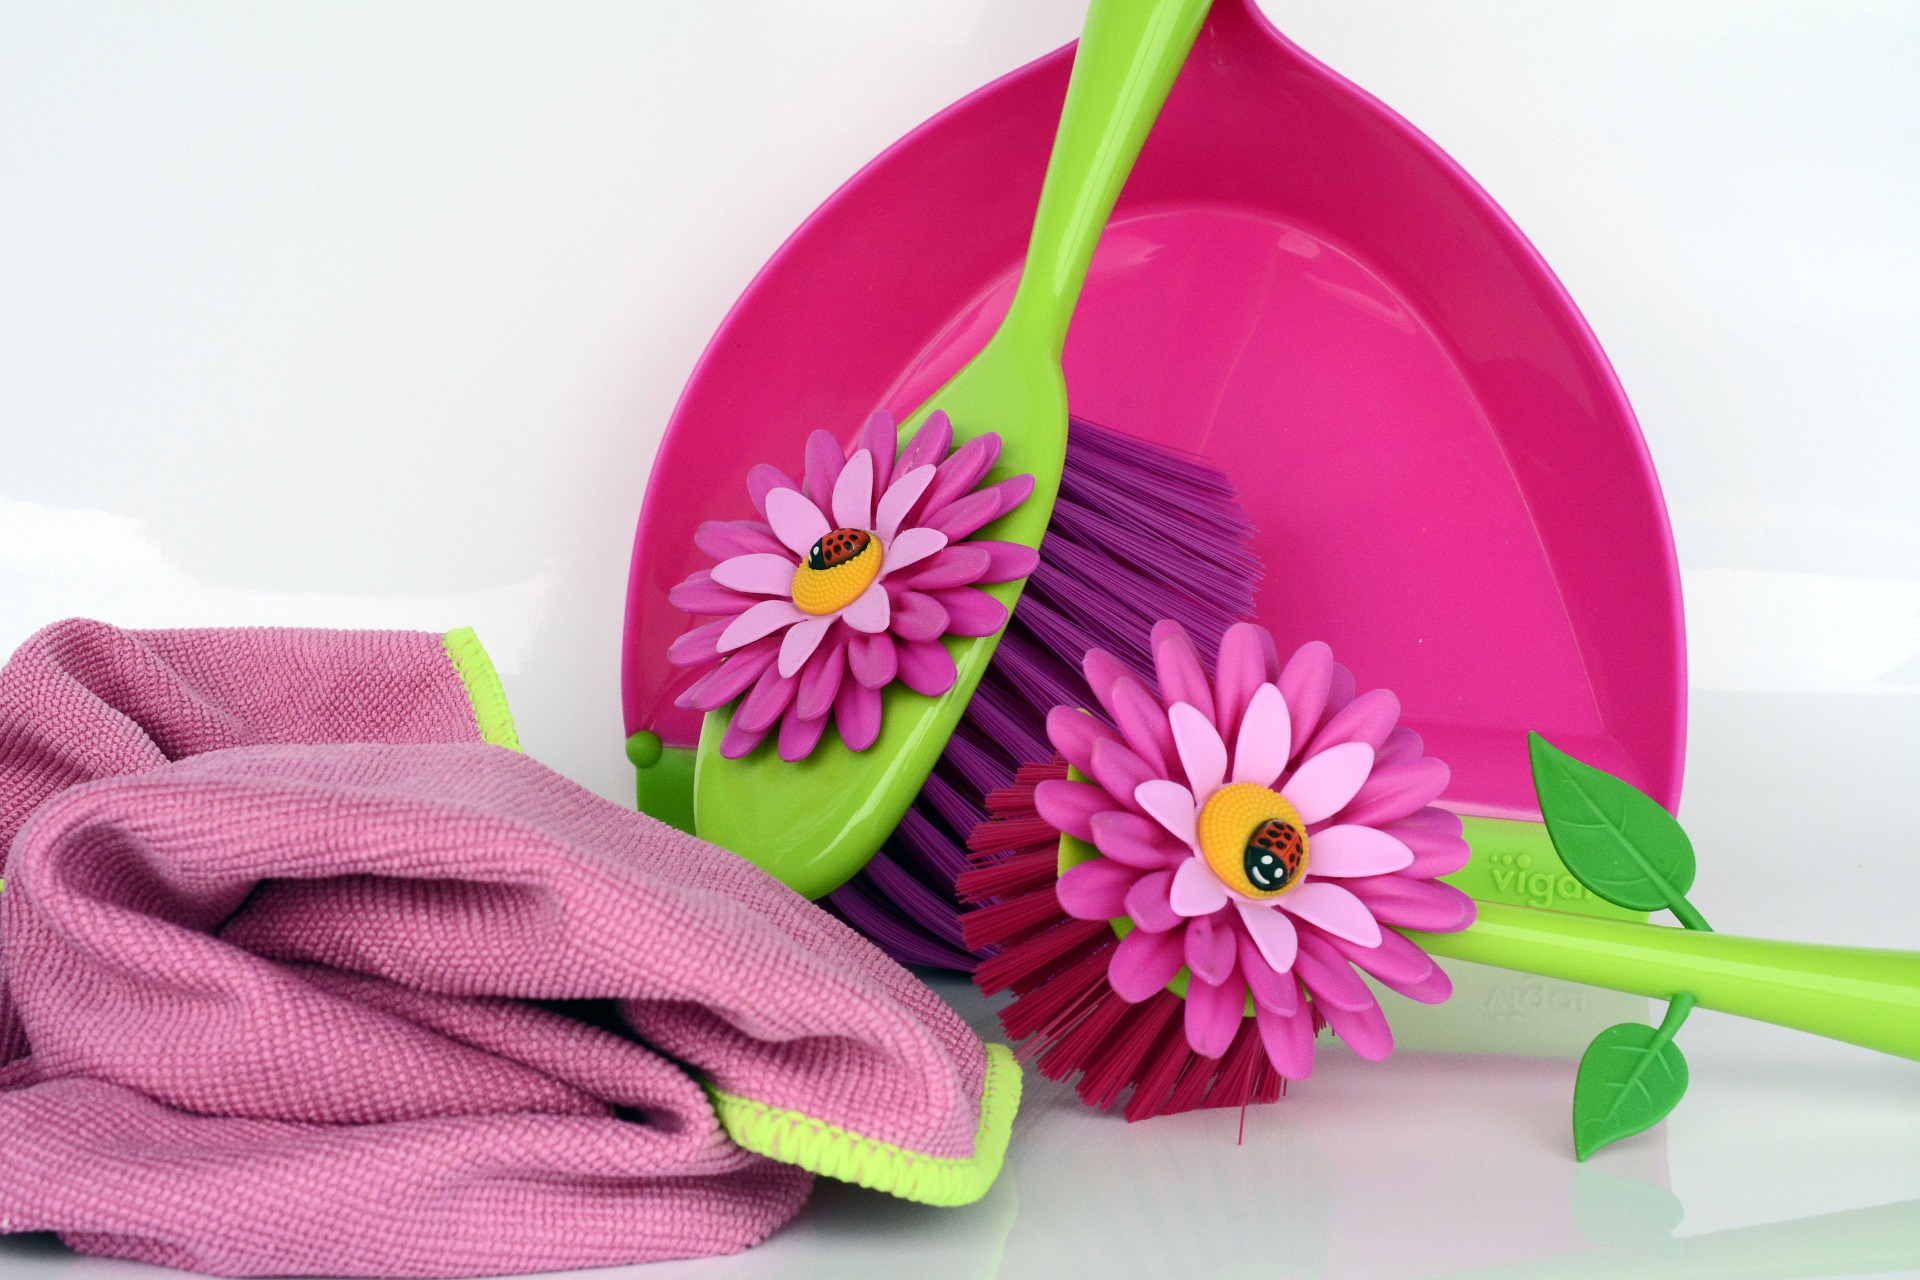 Spring Cleaning tools pink and green